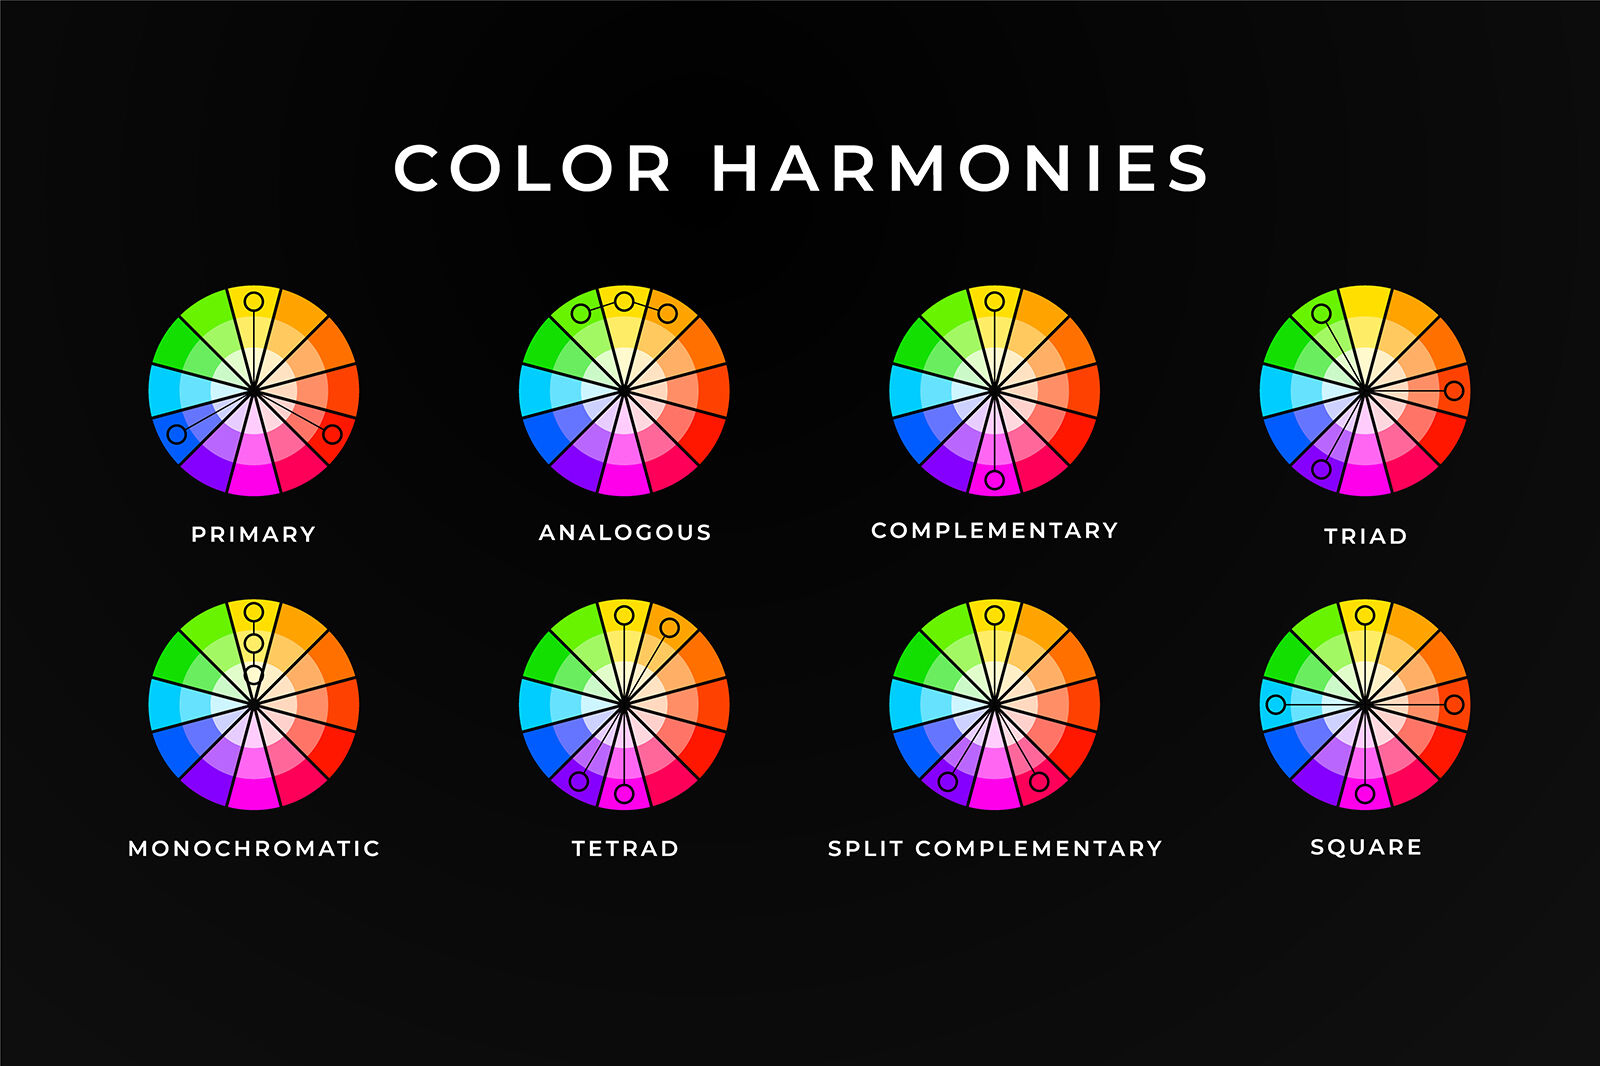 color, theory, wheel, harmonies, properties, colorwheel, picker, colour, icon, selector, assistant, information, harmony, primary...